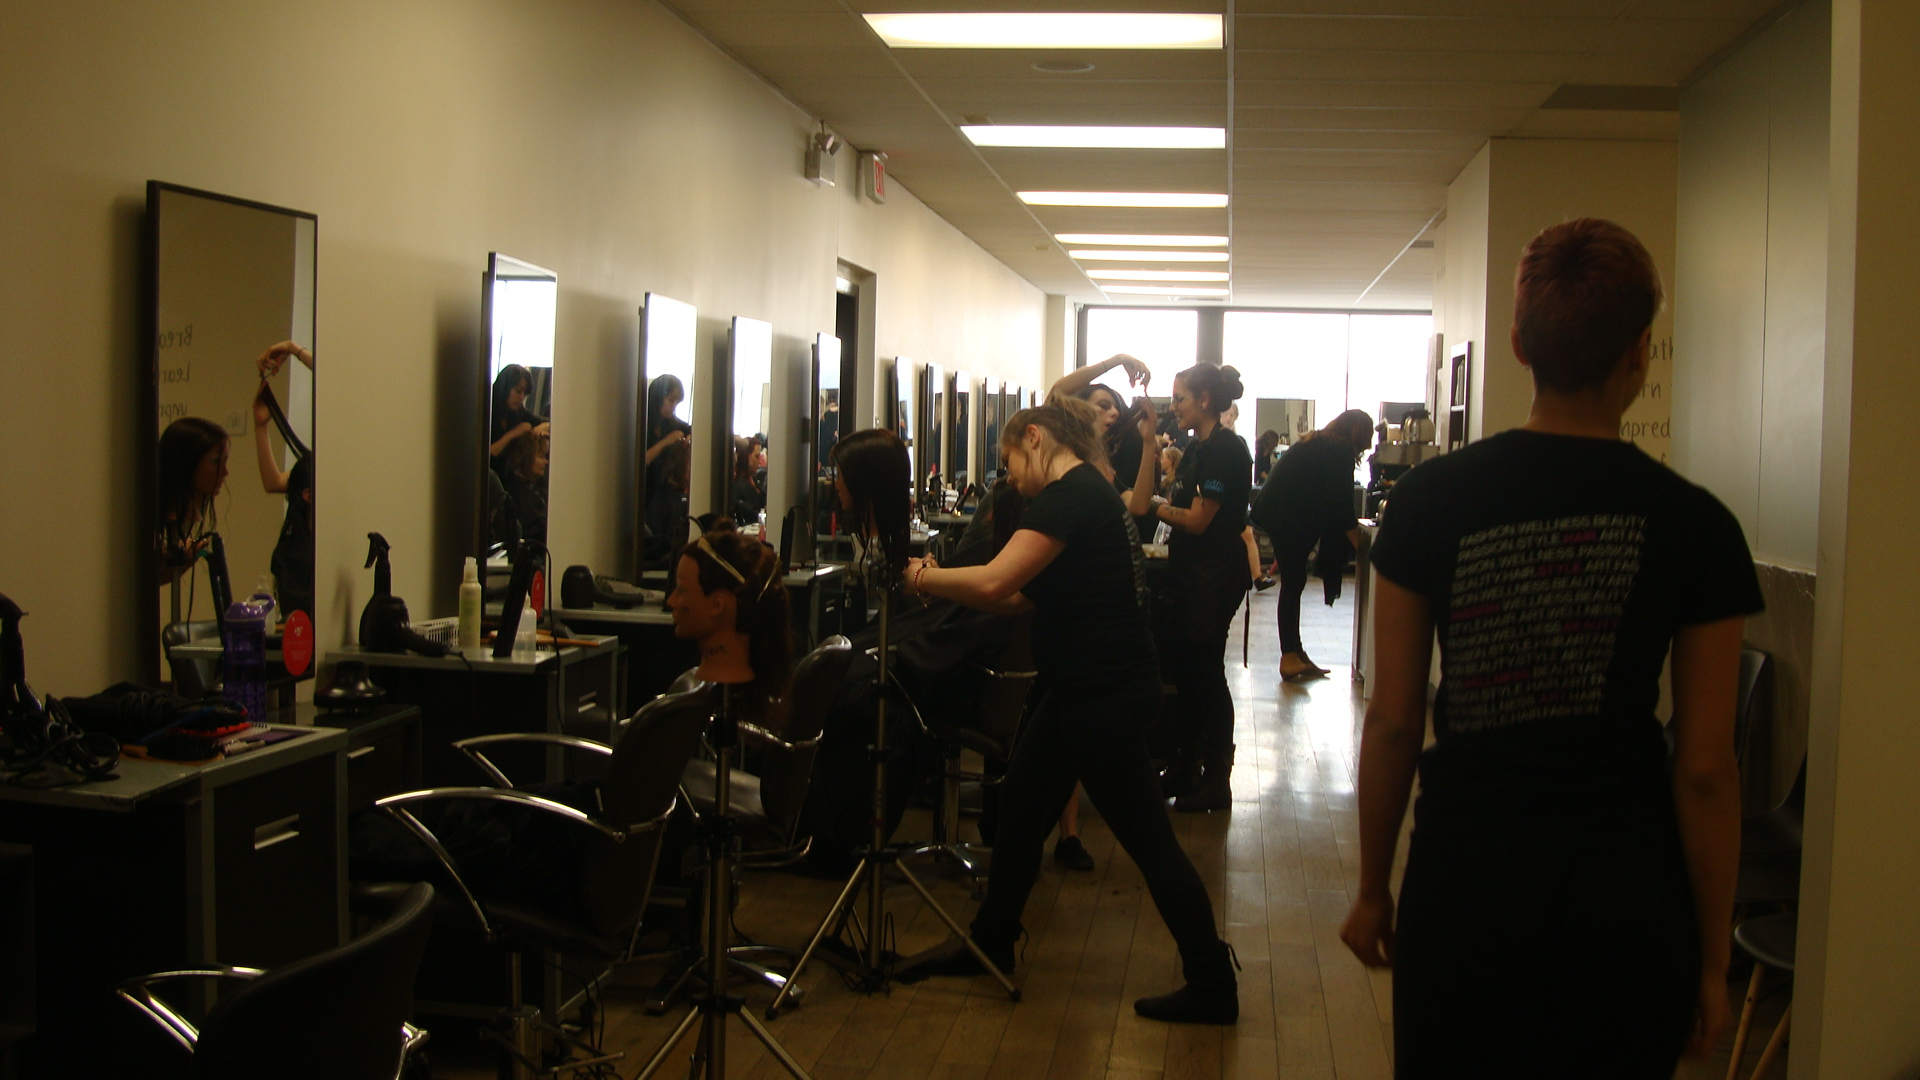 Cheap Hair Salons Calgary Ab Hair Salons Calgary Hair